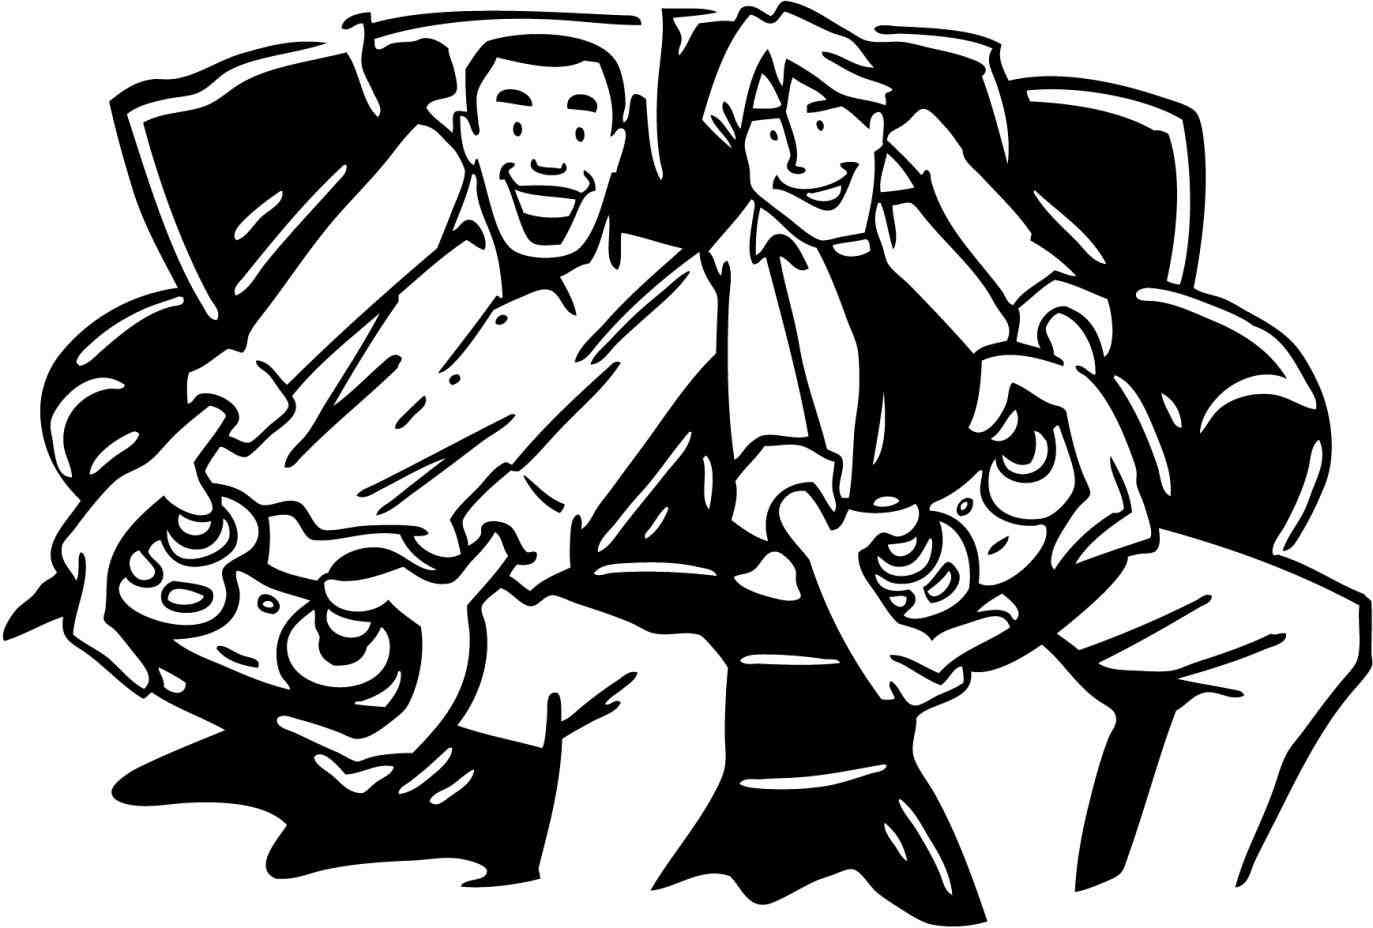 40+ Games Clipart Black And White